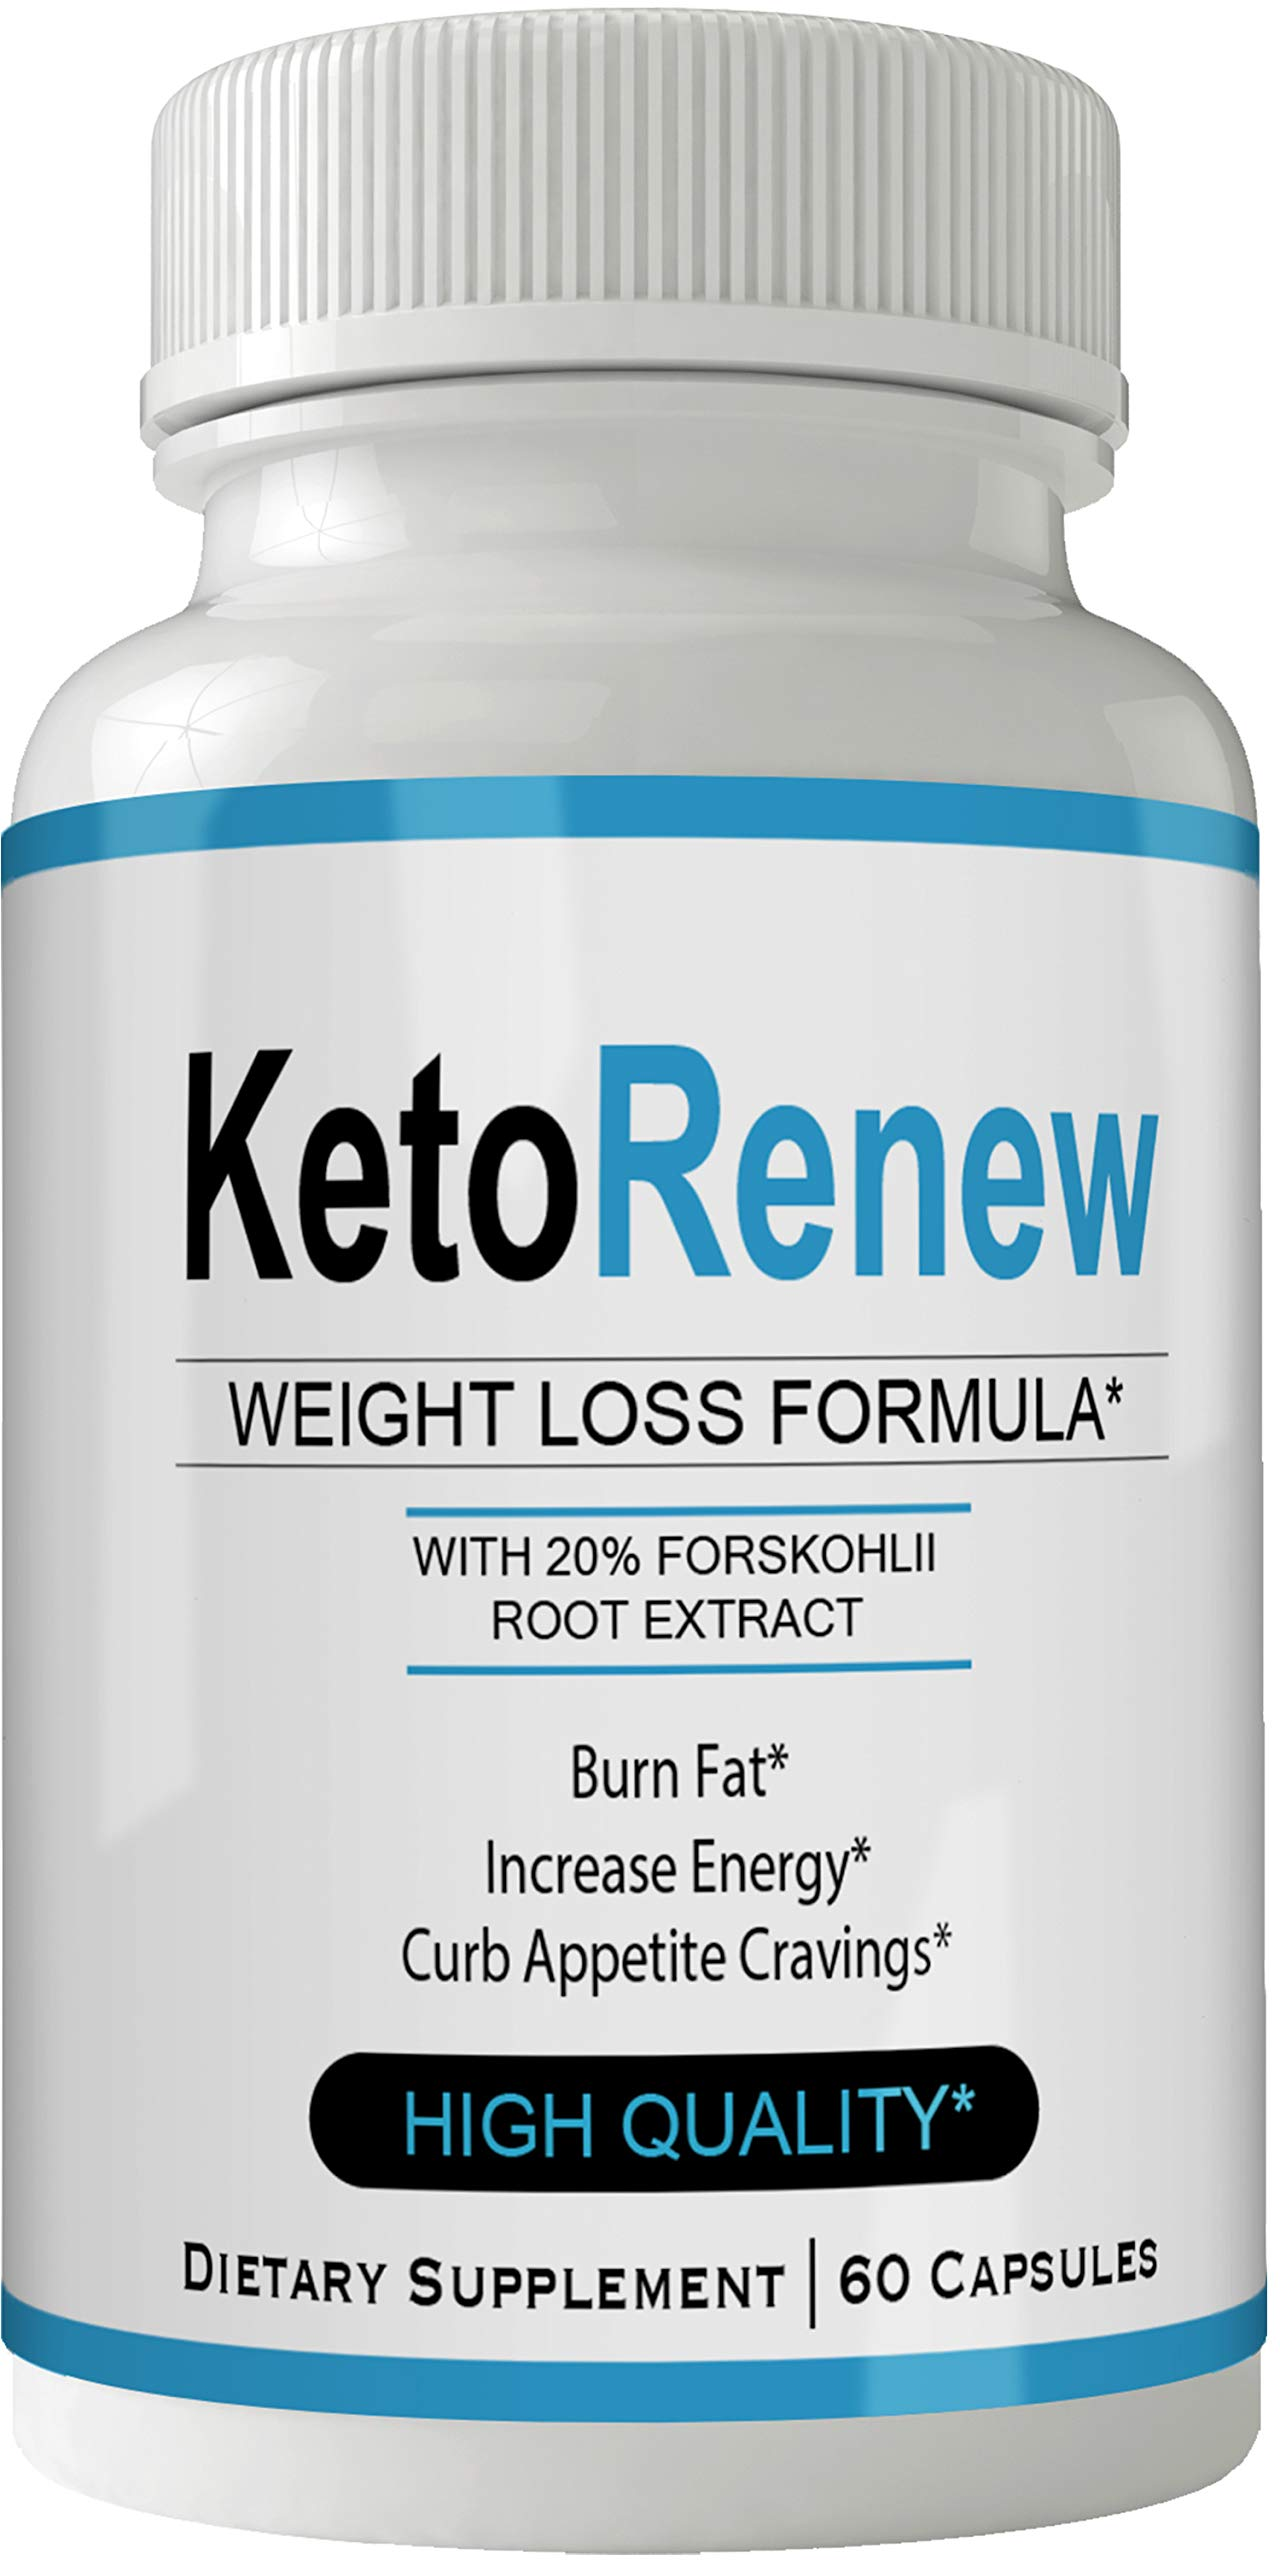 Keto Renew Diet Pill Forskolin for Weight Loss Pills Tablets Supplement - Capsules with Natural High Quality Pure Forskolin Extract Diet Pills